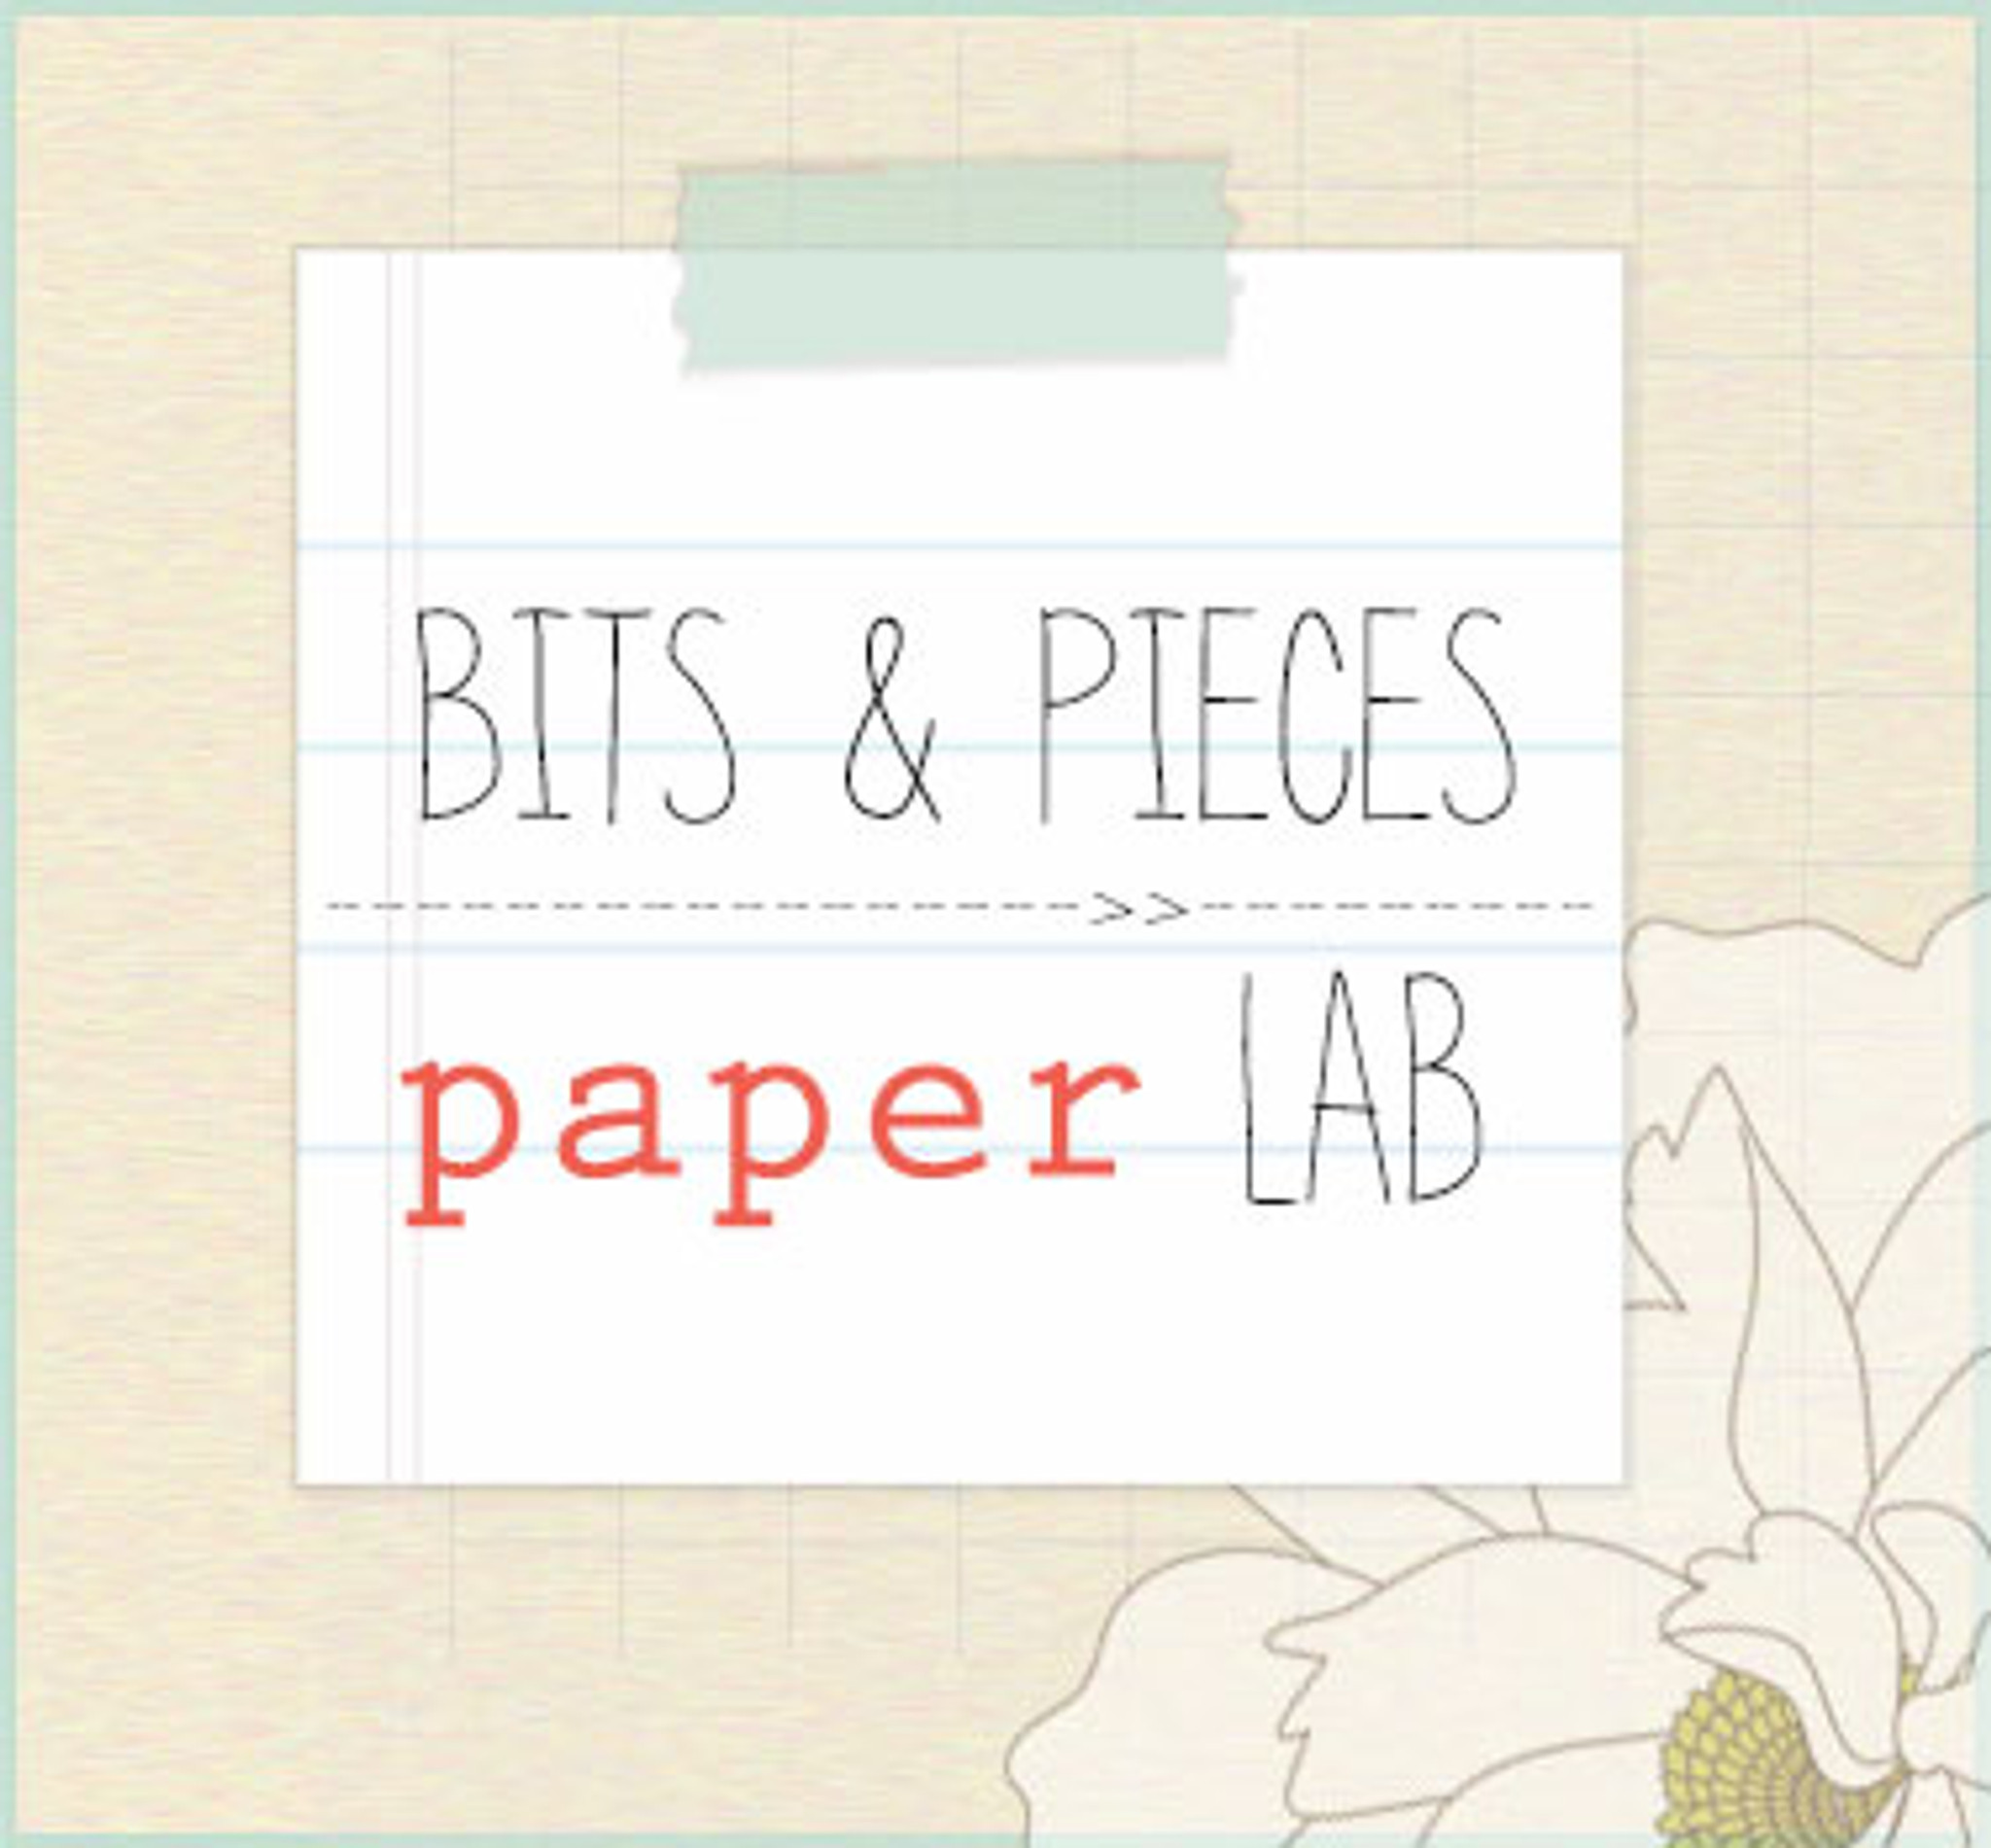 Bits & Pieces Paper Lab